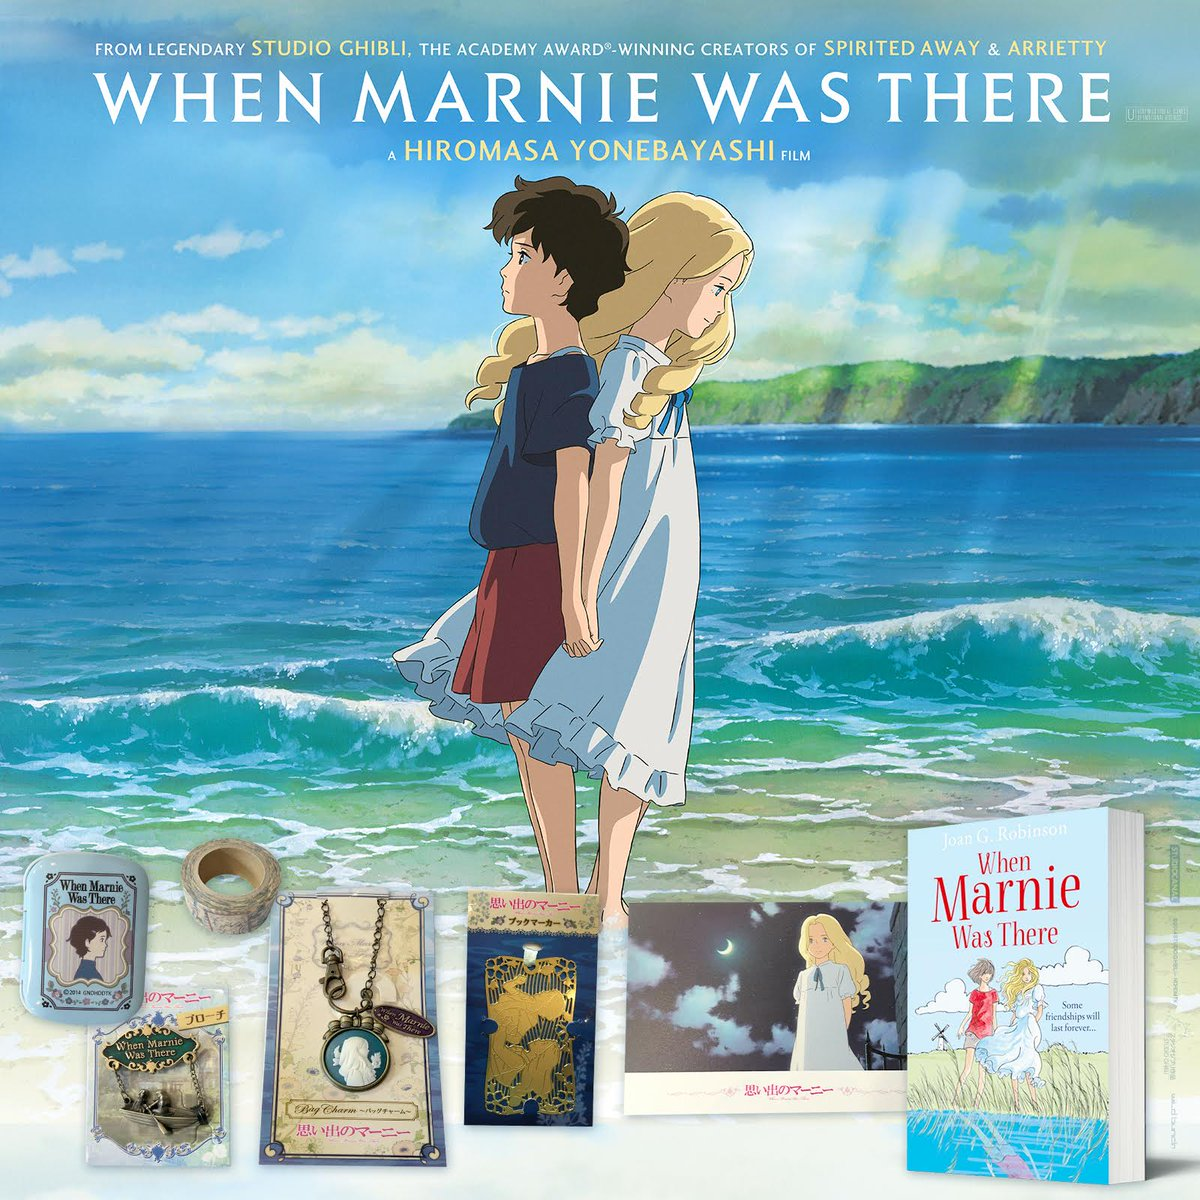 #WhenMarnieWasThere is now playing & thanks to @StudiocanalUK we have a #StudioGhibli bundle to giveaway. RT to win! https://t.co/7pFiyqBCUy